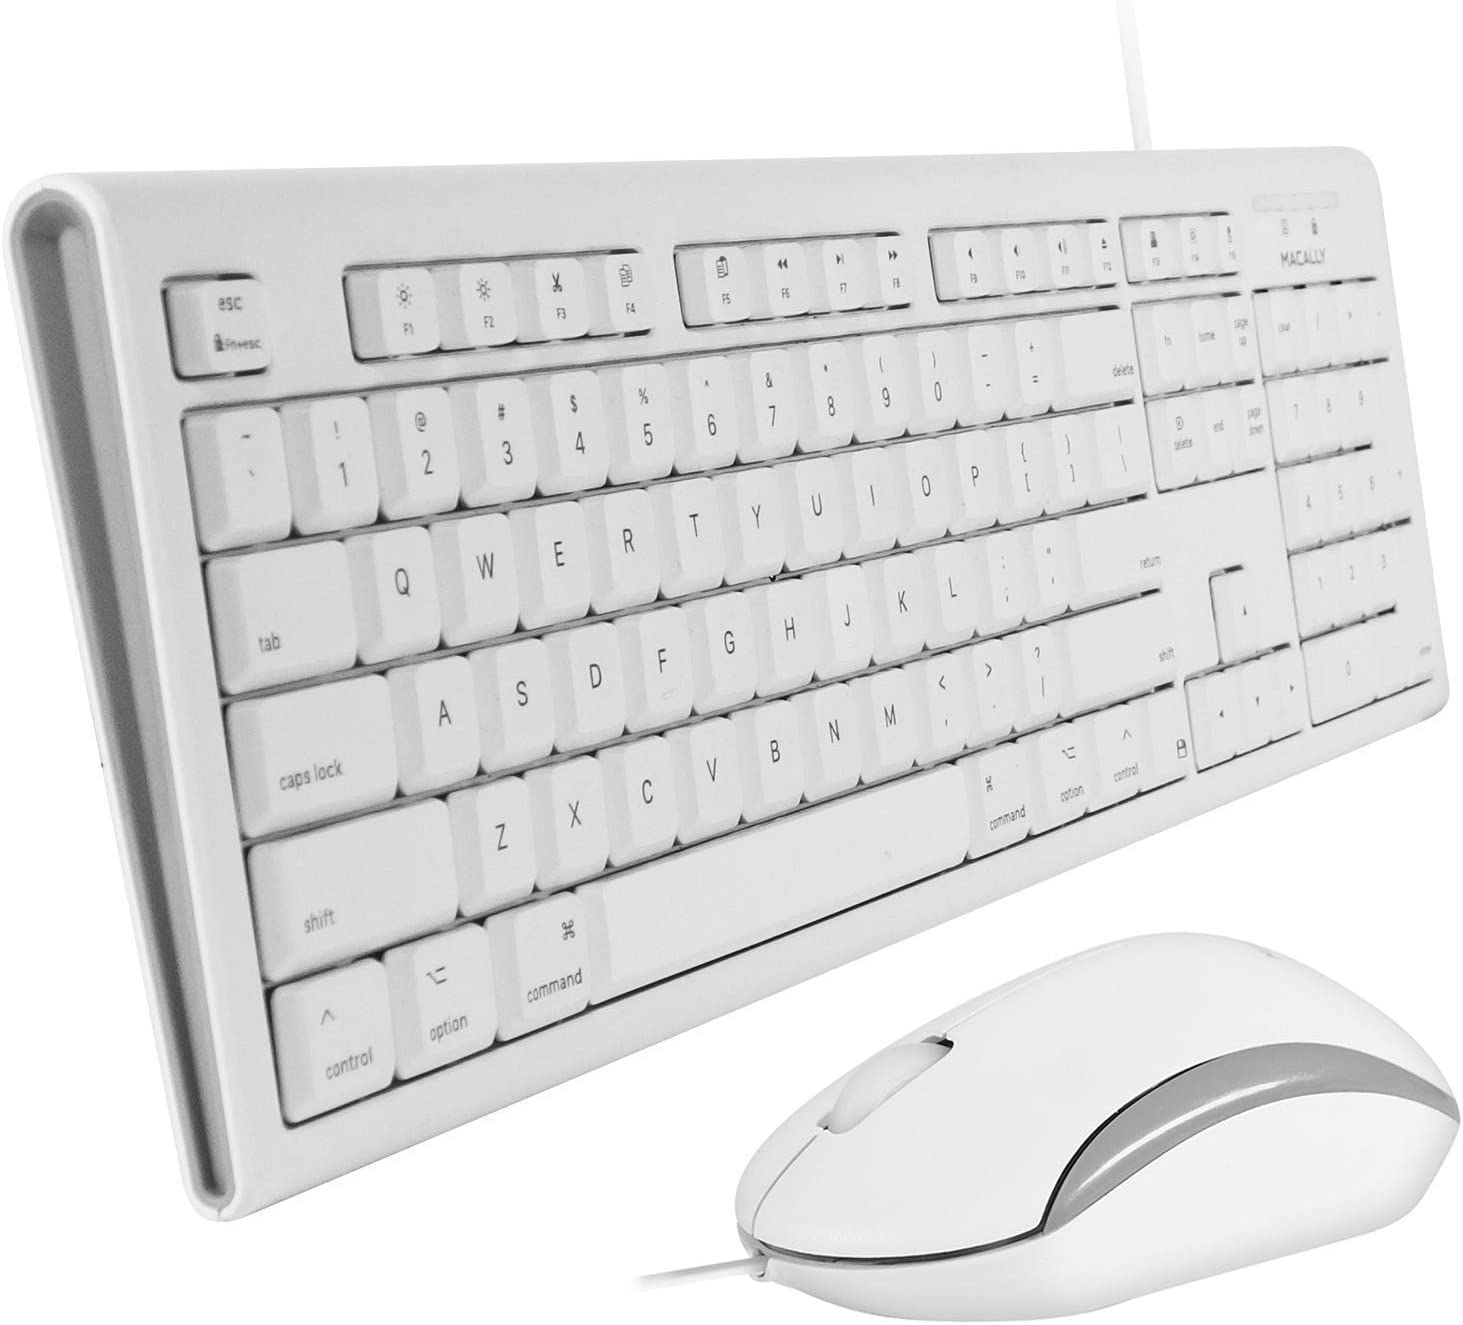 Macally Full Size USB Wired Keyboard & Mouse Combo for Mac Mini Pro, iMac Desktop Computer, MacBook Pro Air Laptops - Mac Compatible Apple Shortcuts, Extended with Number Keypad, Rubber Dome Keycaps